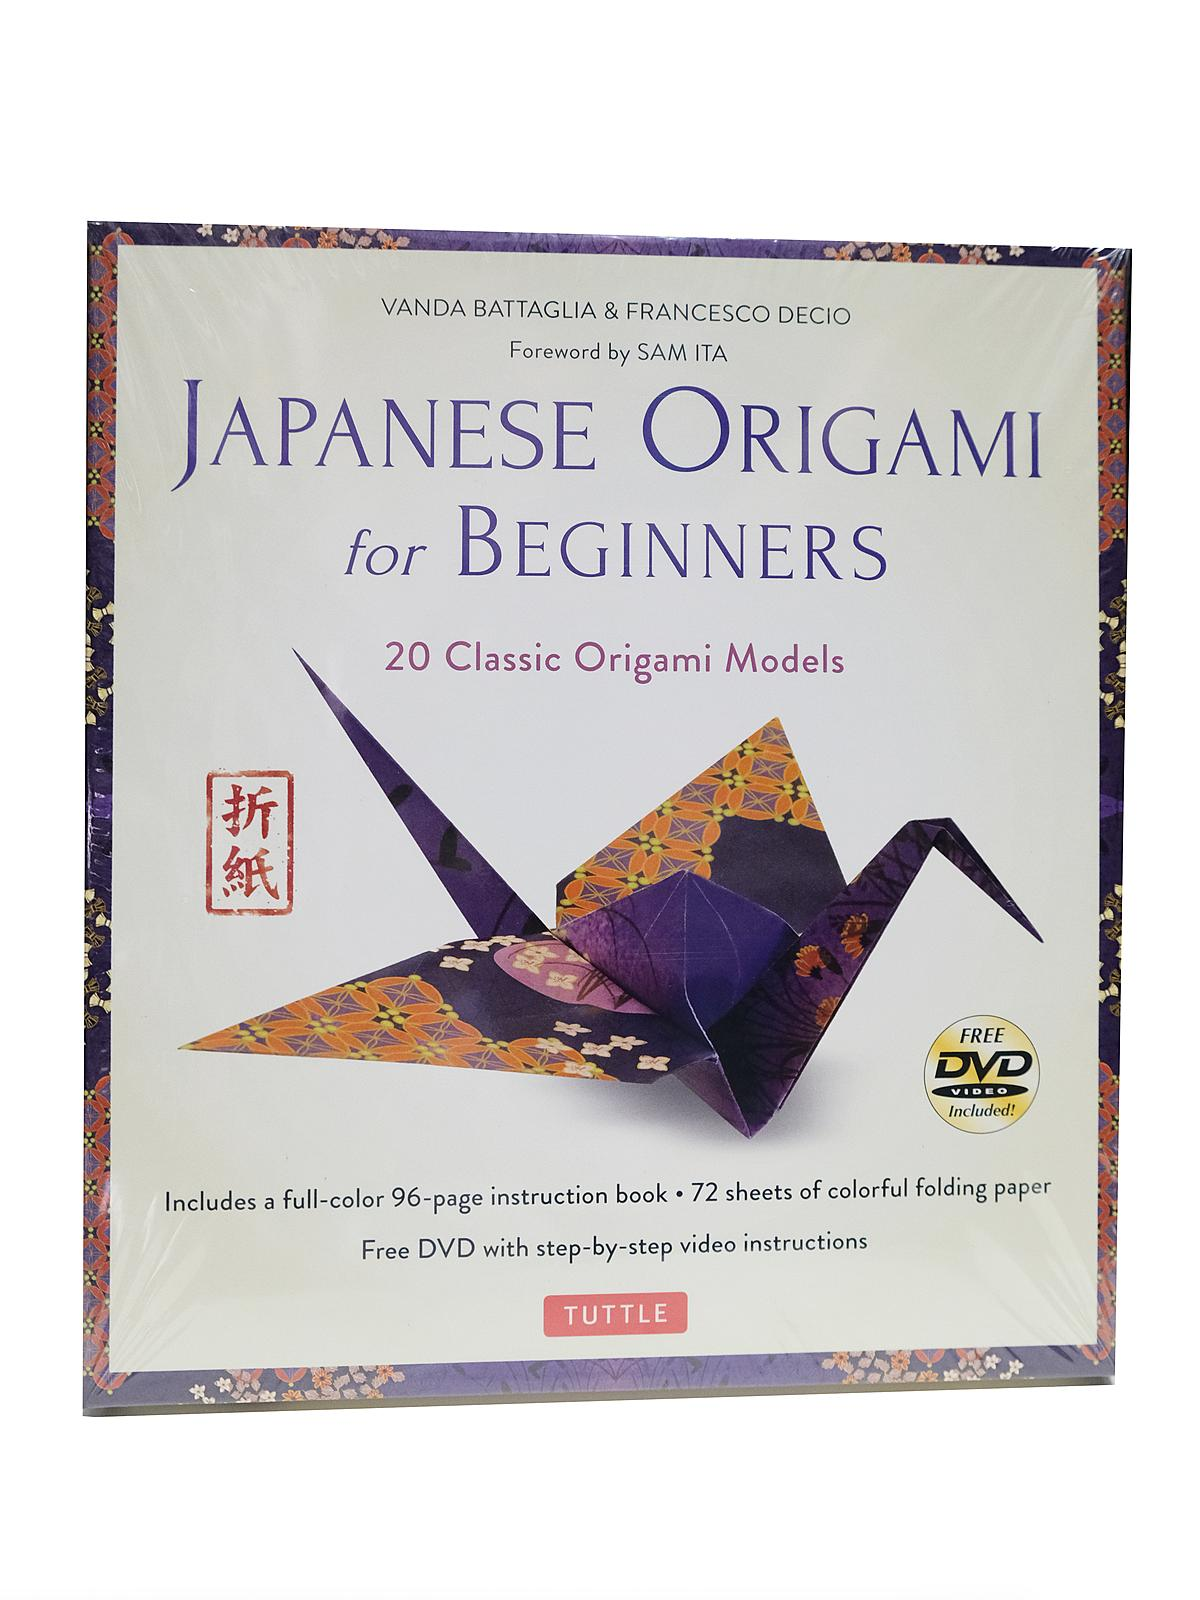 Japanese Origami for Beginners